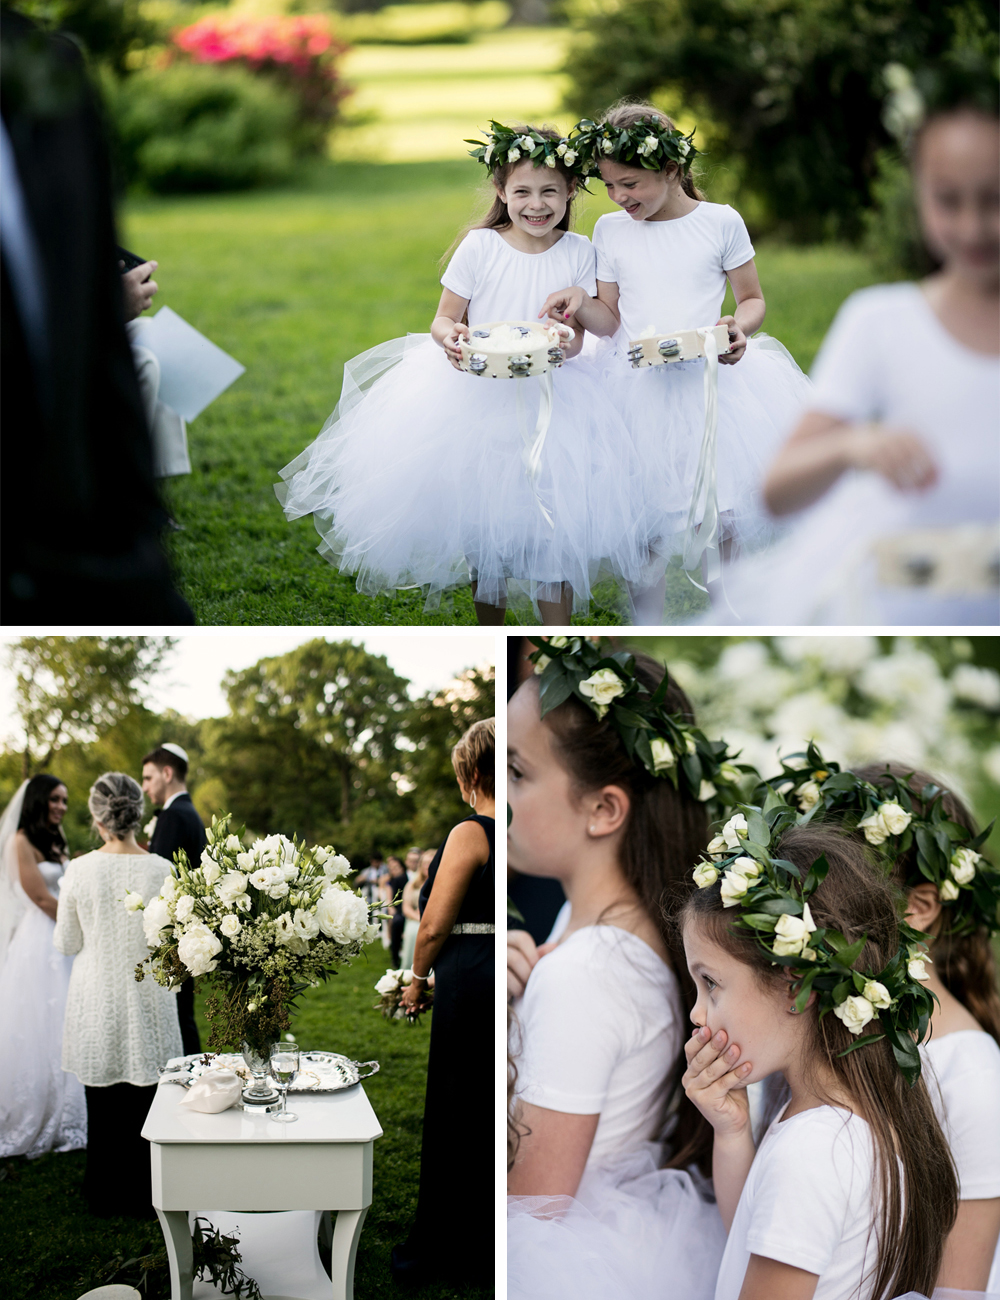 Jewish Greek Wedding at Brooklyn Botanical Garden New York flower girls